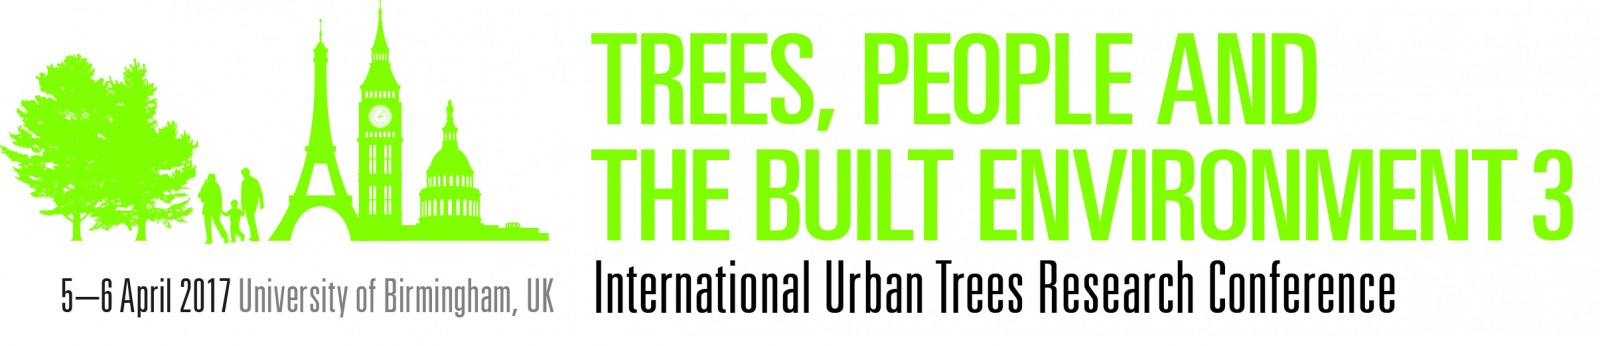 Urban Trees International Research Conference